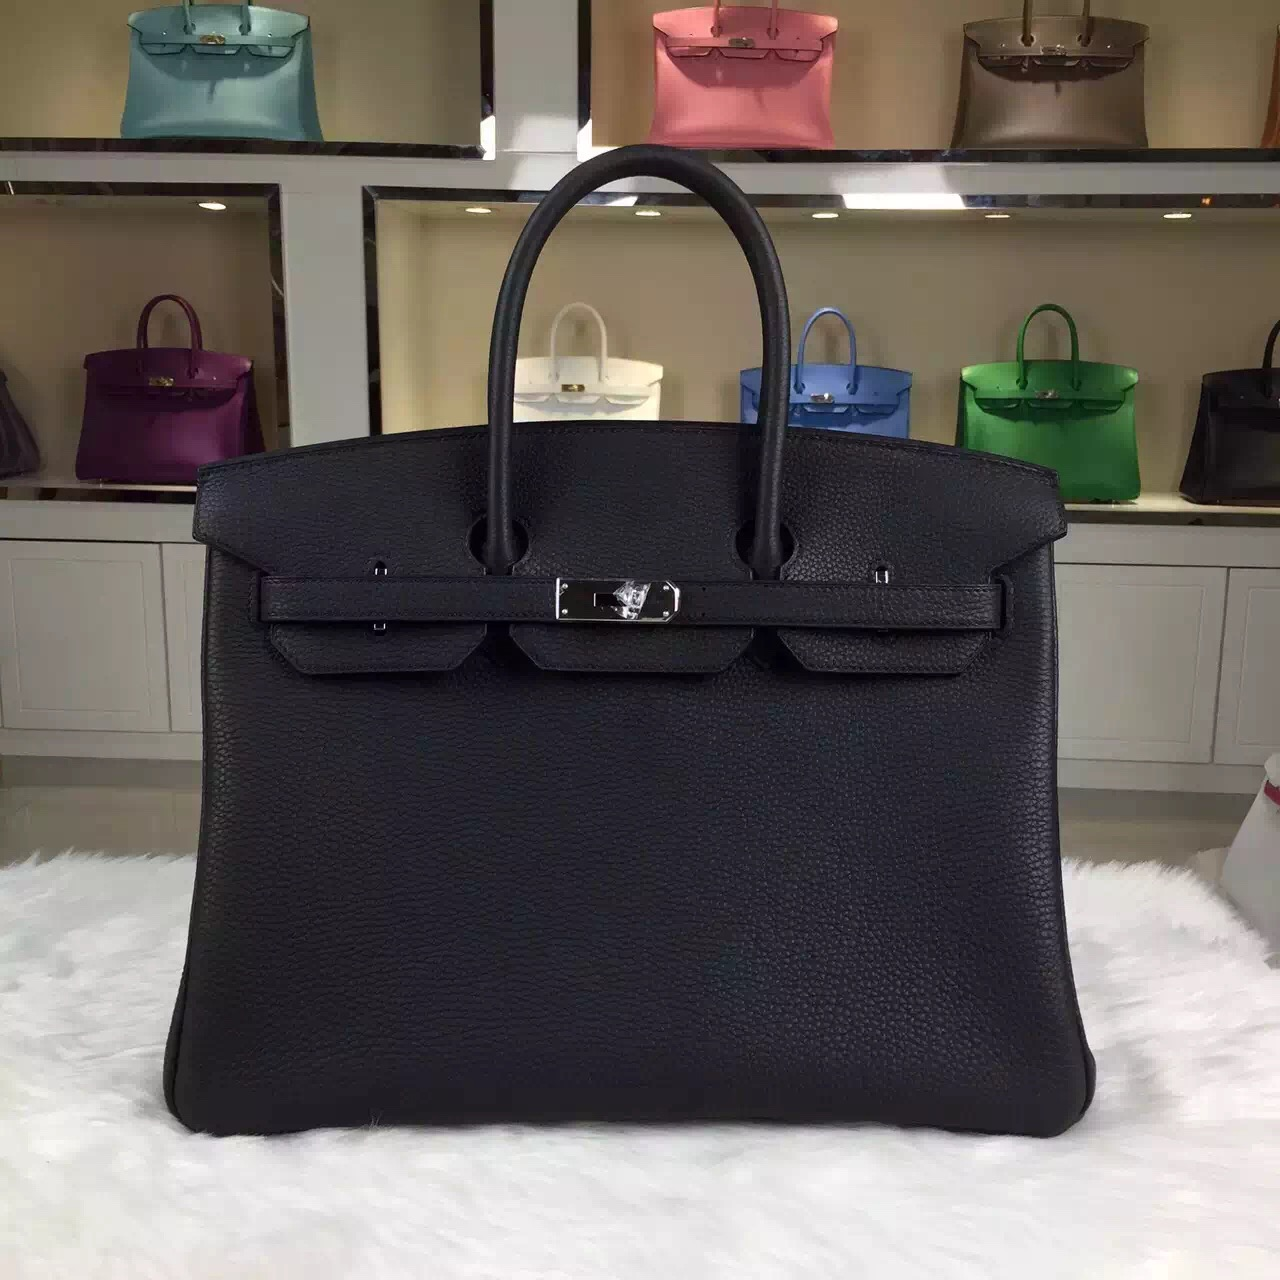 Vip Customized Hermes Birkin Bag 35cm 89 Black Togo Leather Silver Hardware